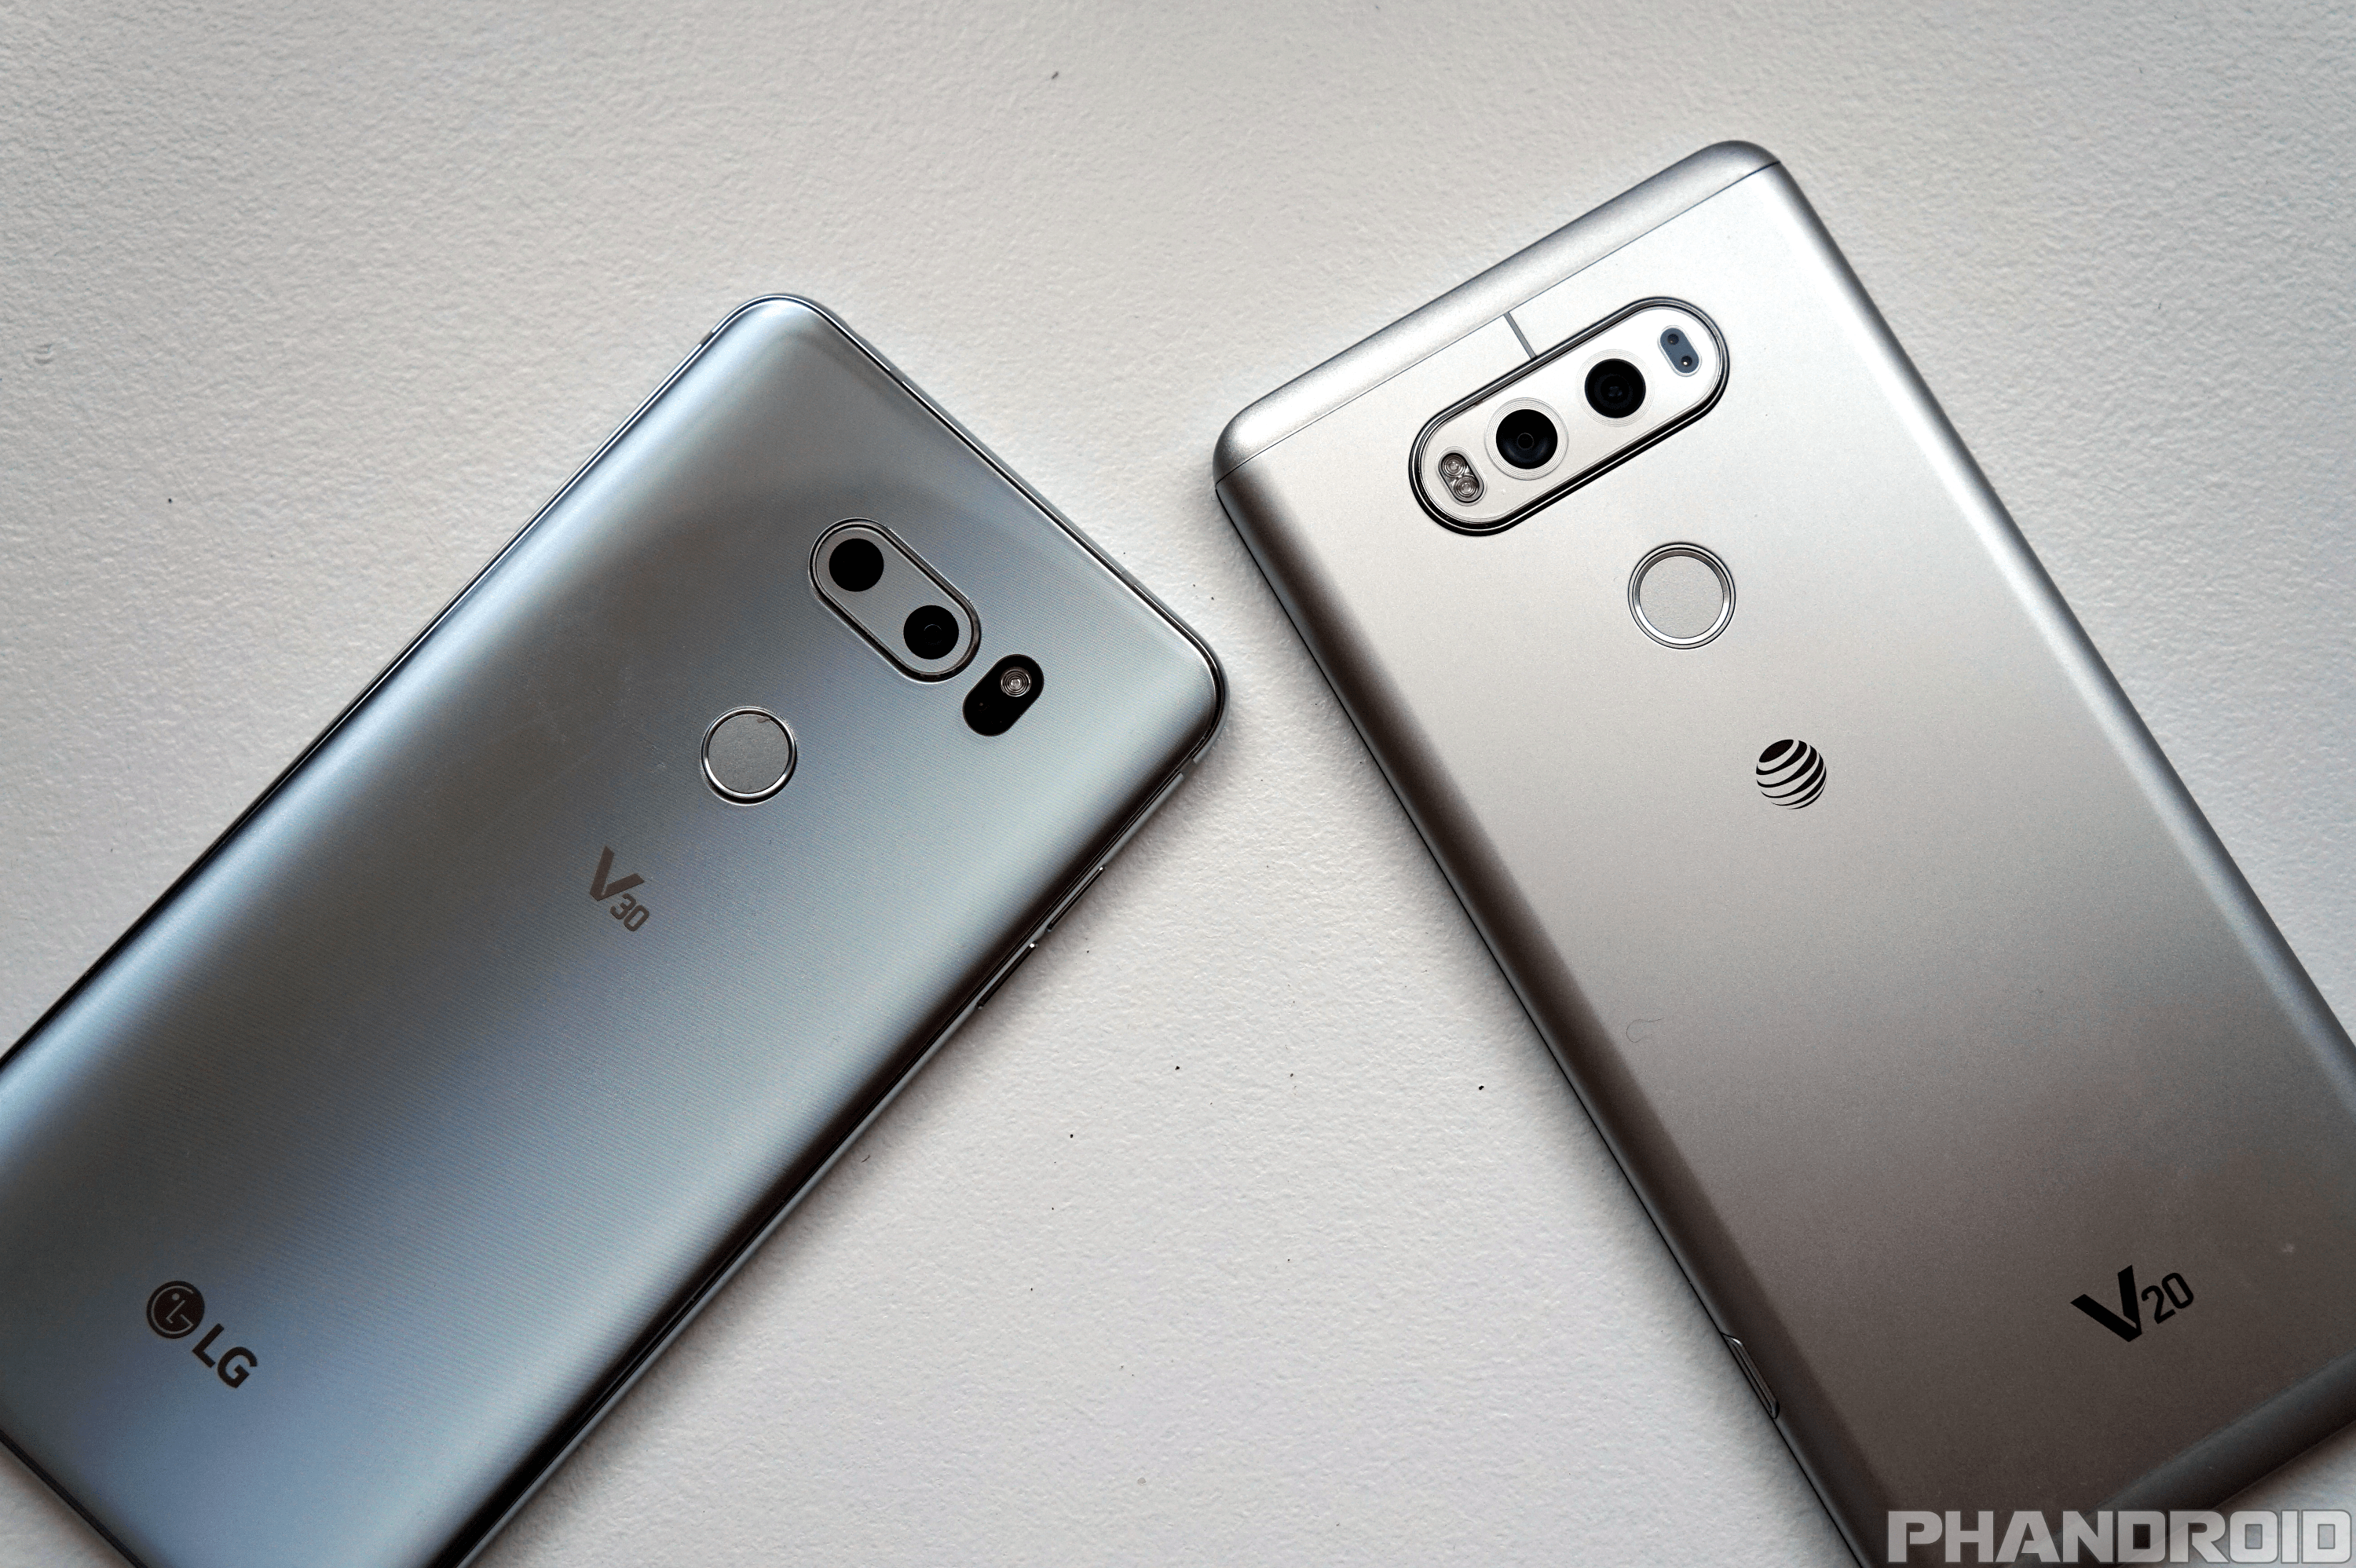 LG V30 Vs Galaxy Note 8 Vs HTC U11 Vs Pixel XL Vs IPhone 7 Plus